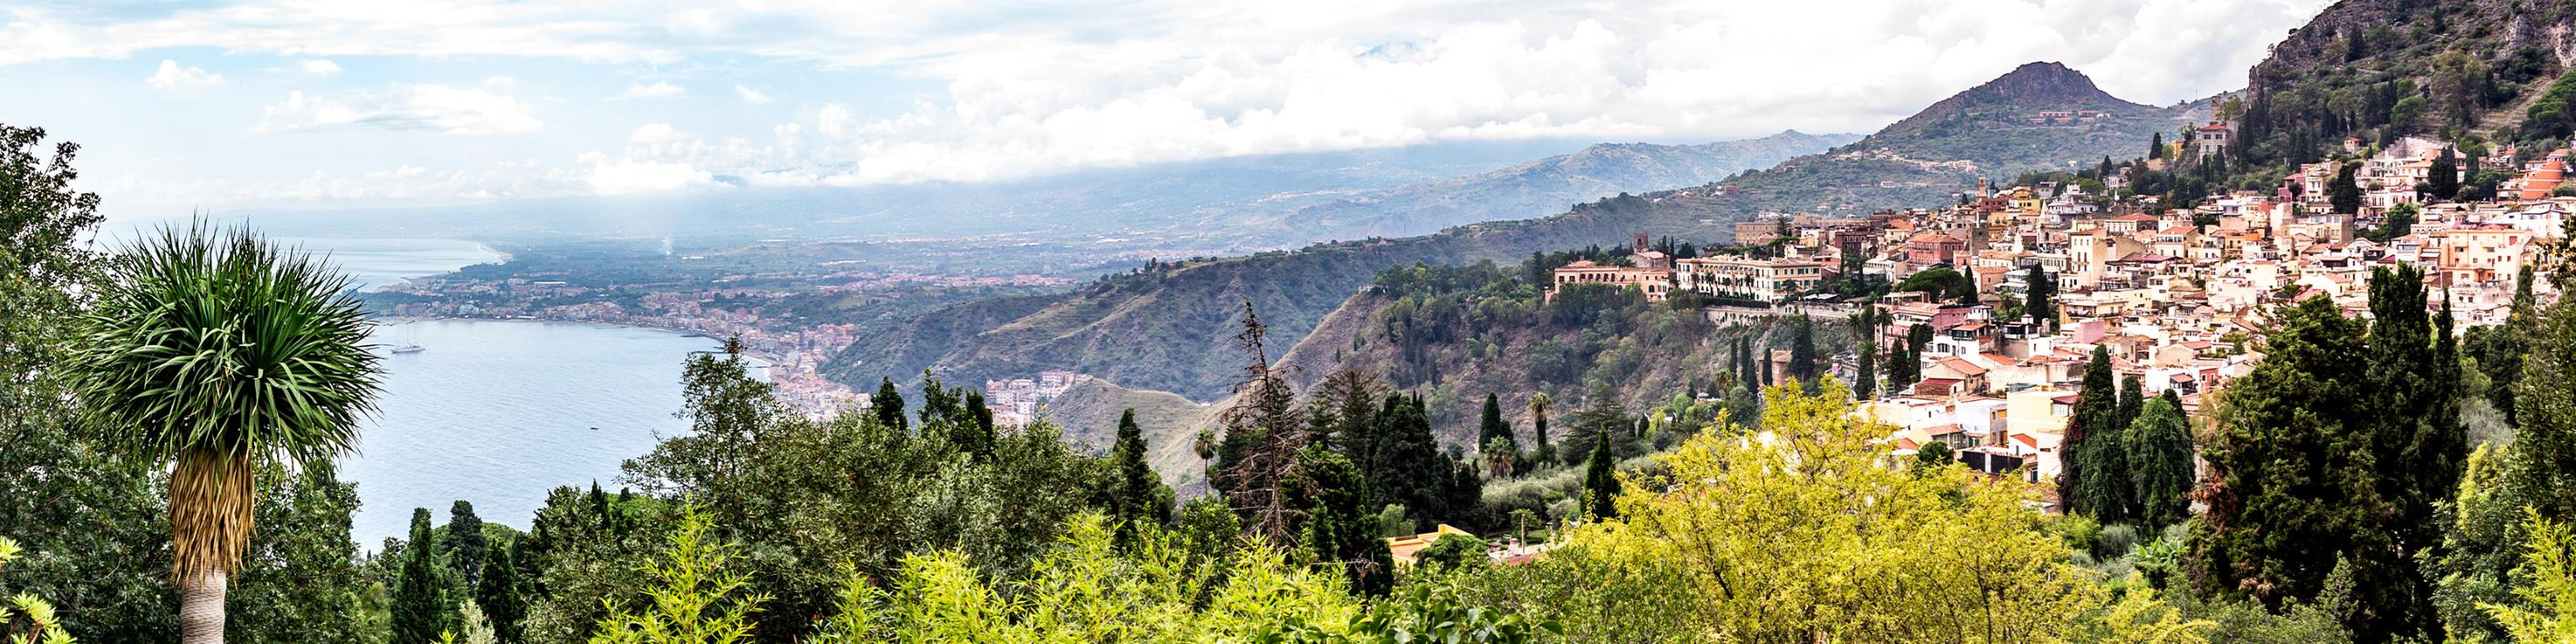 A view from Taormina at the base of Mount Etna, which is Sicily's prime wine region.